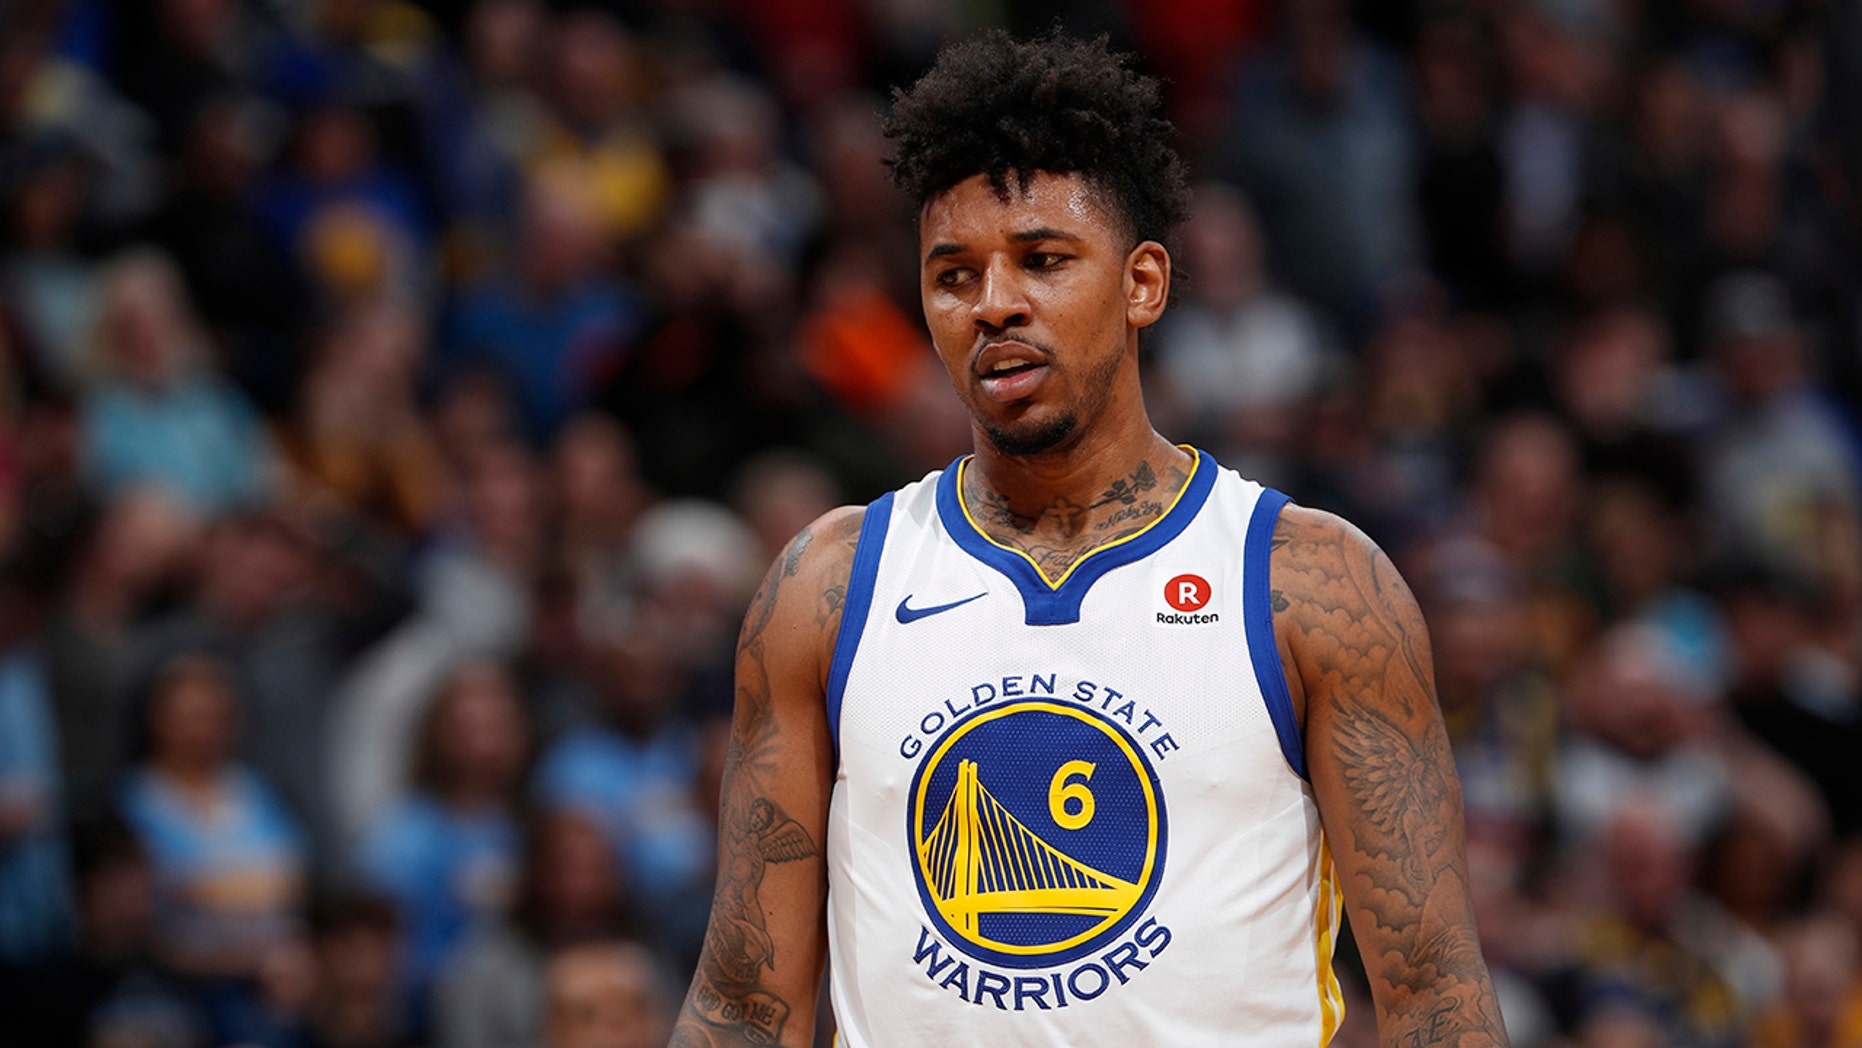 Nick Young joked cocaine should be legalized after he was told that Canada had legalized recreational marijuana use.